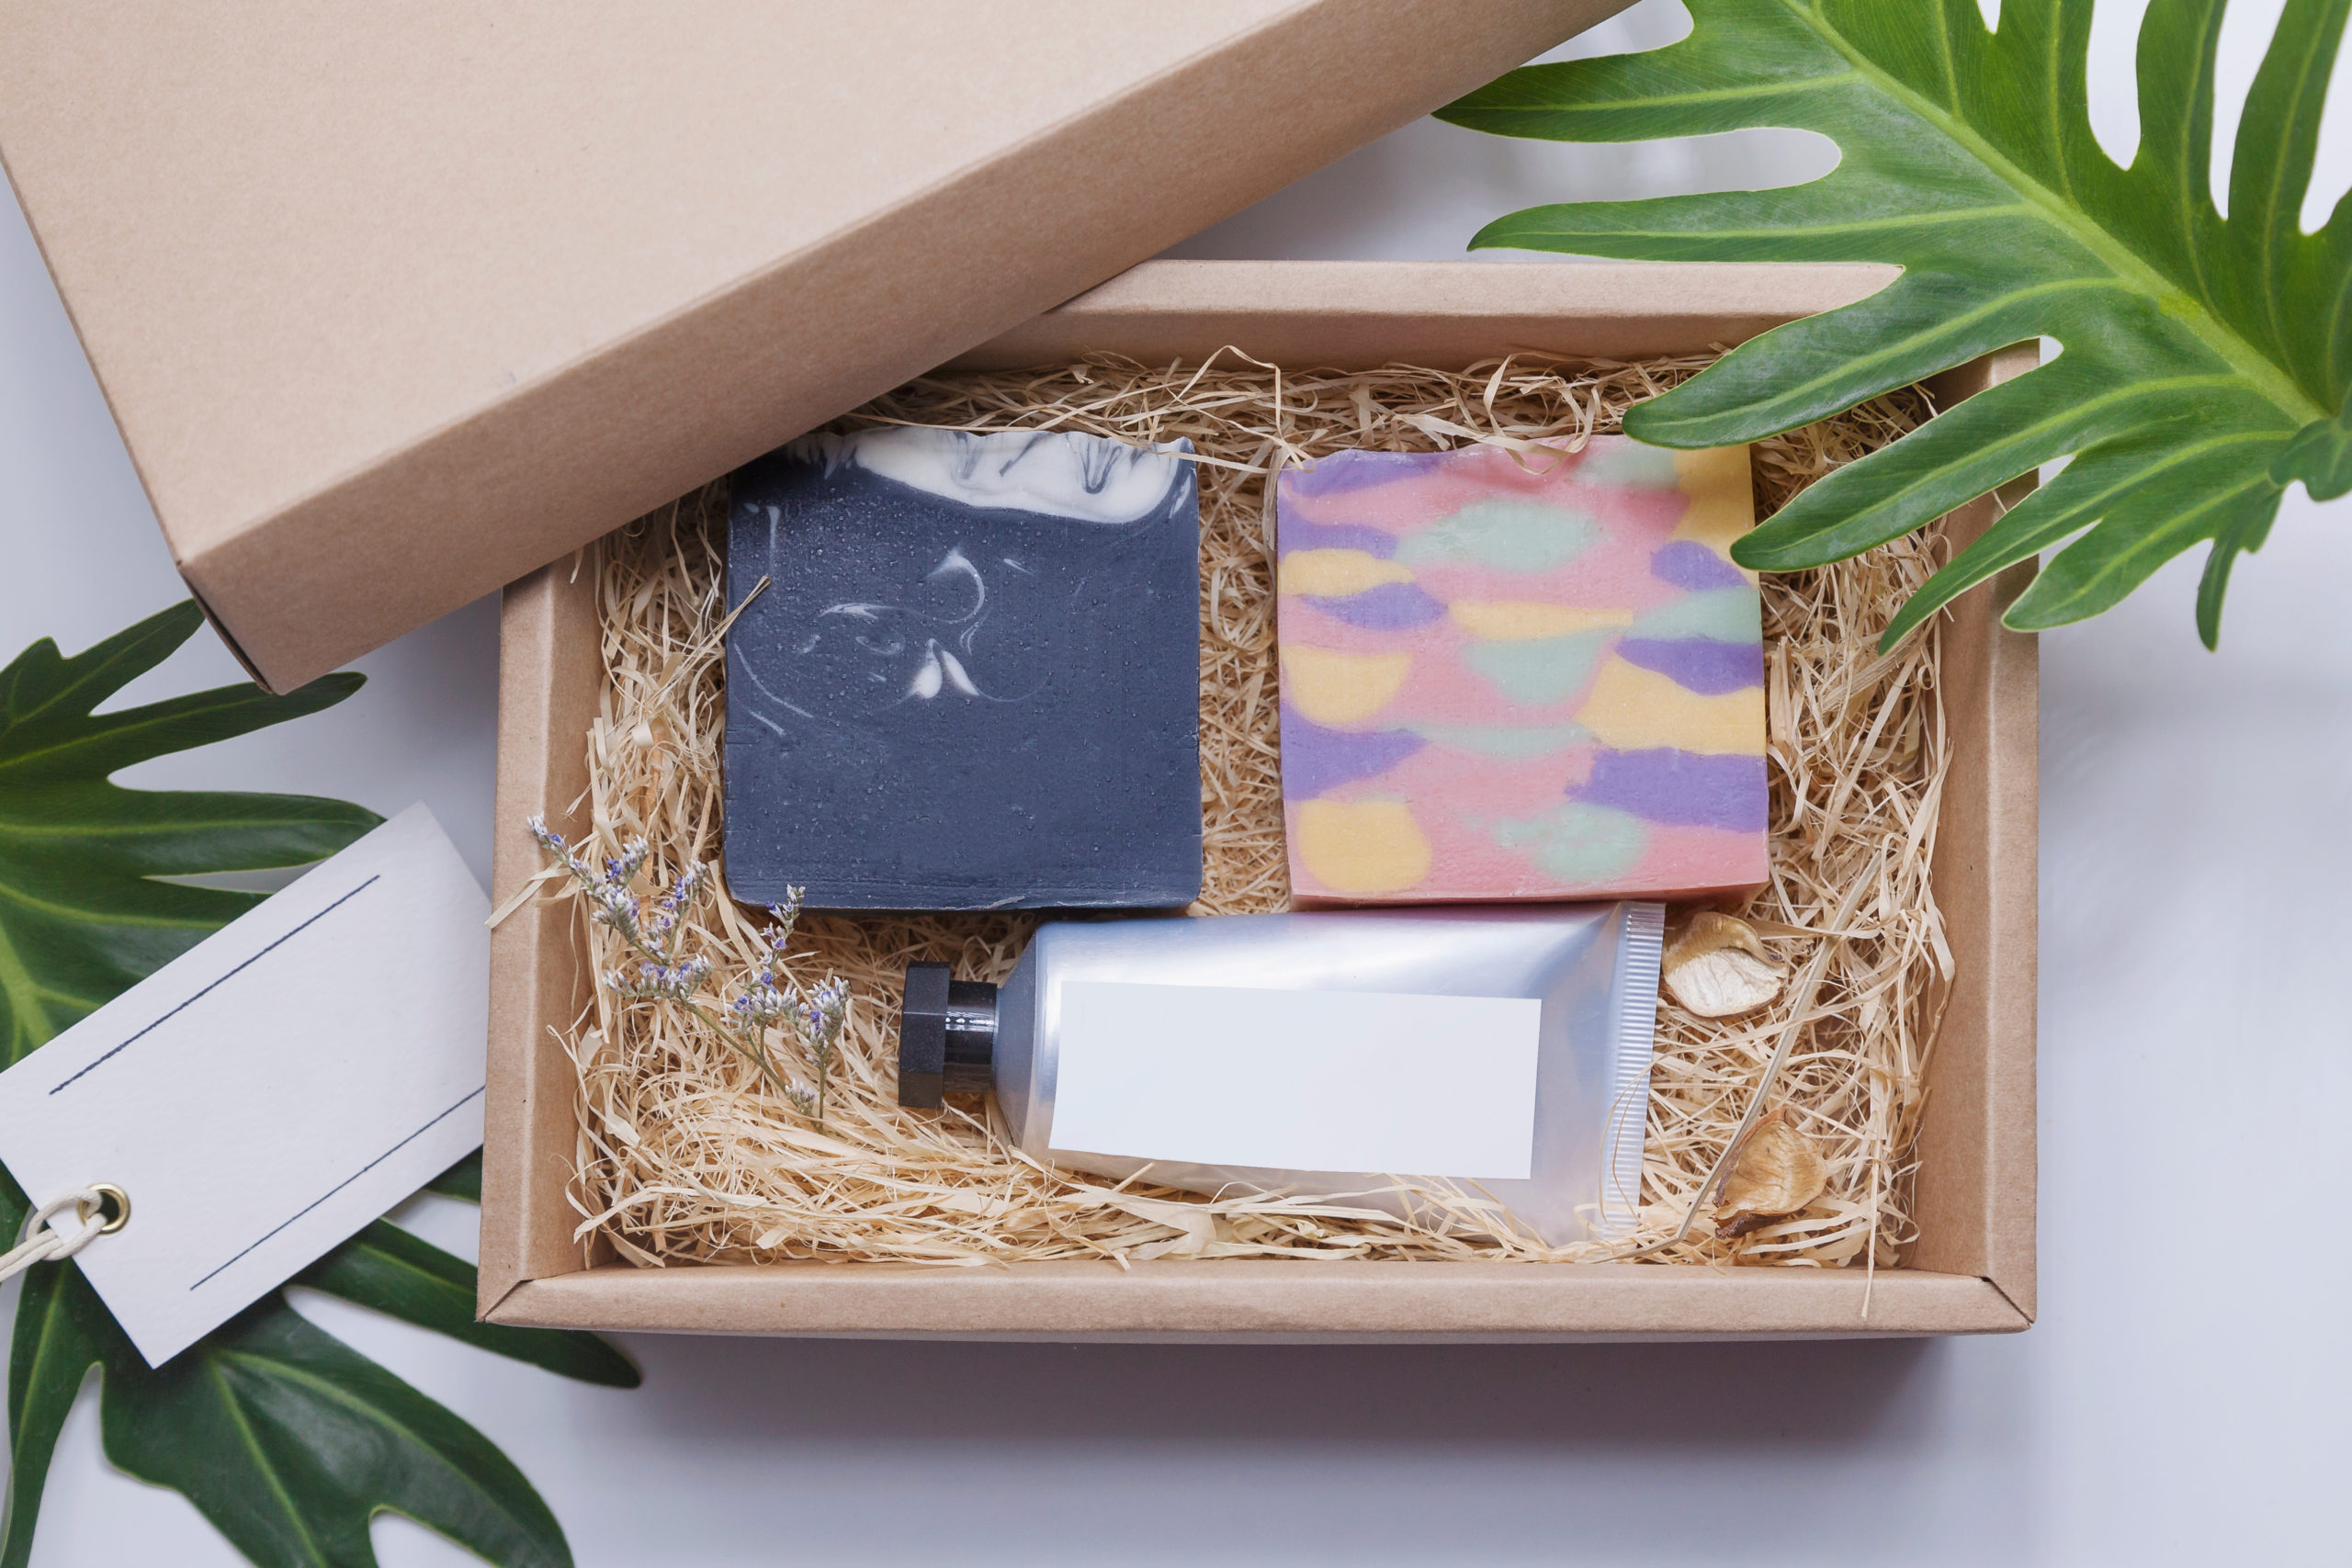 soap and moisturizer in gift box